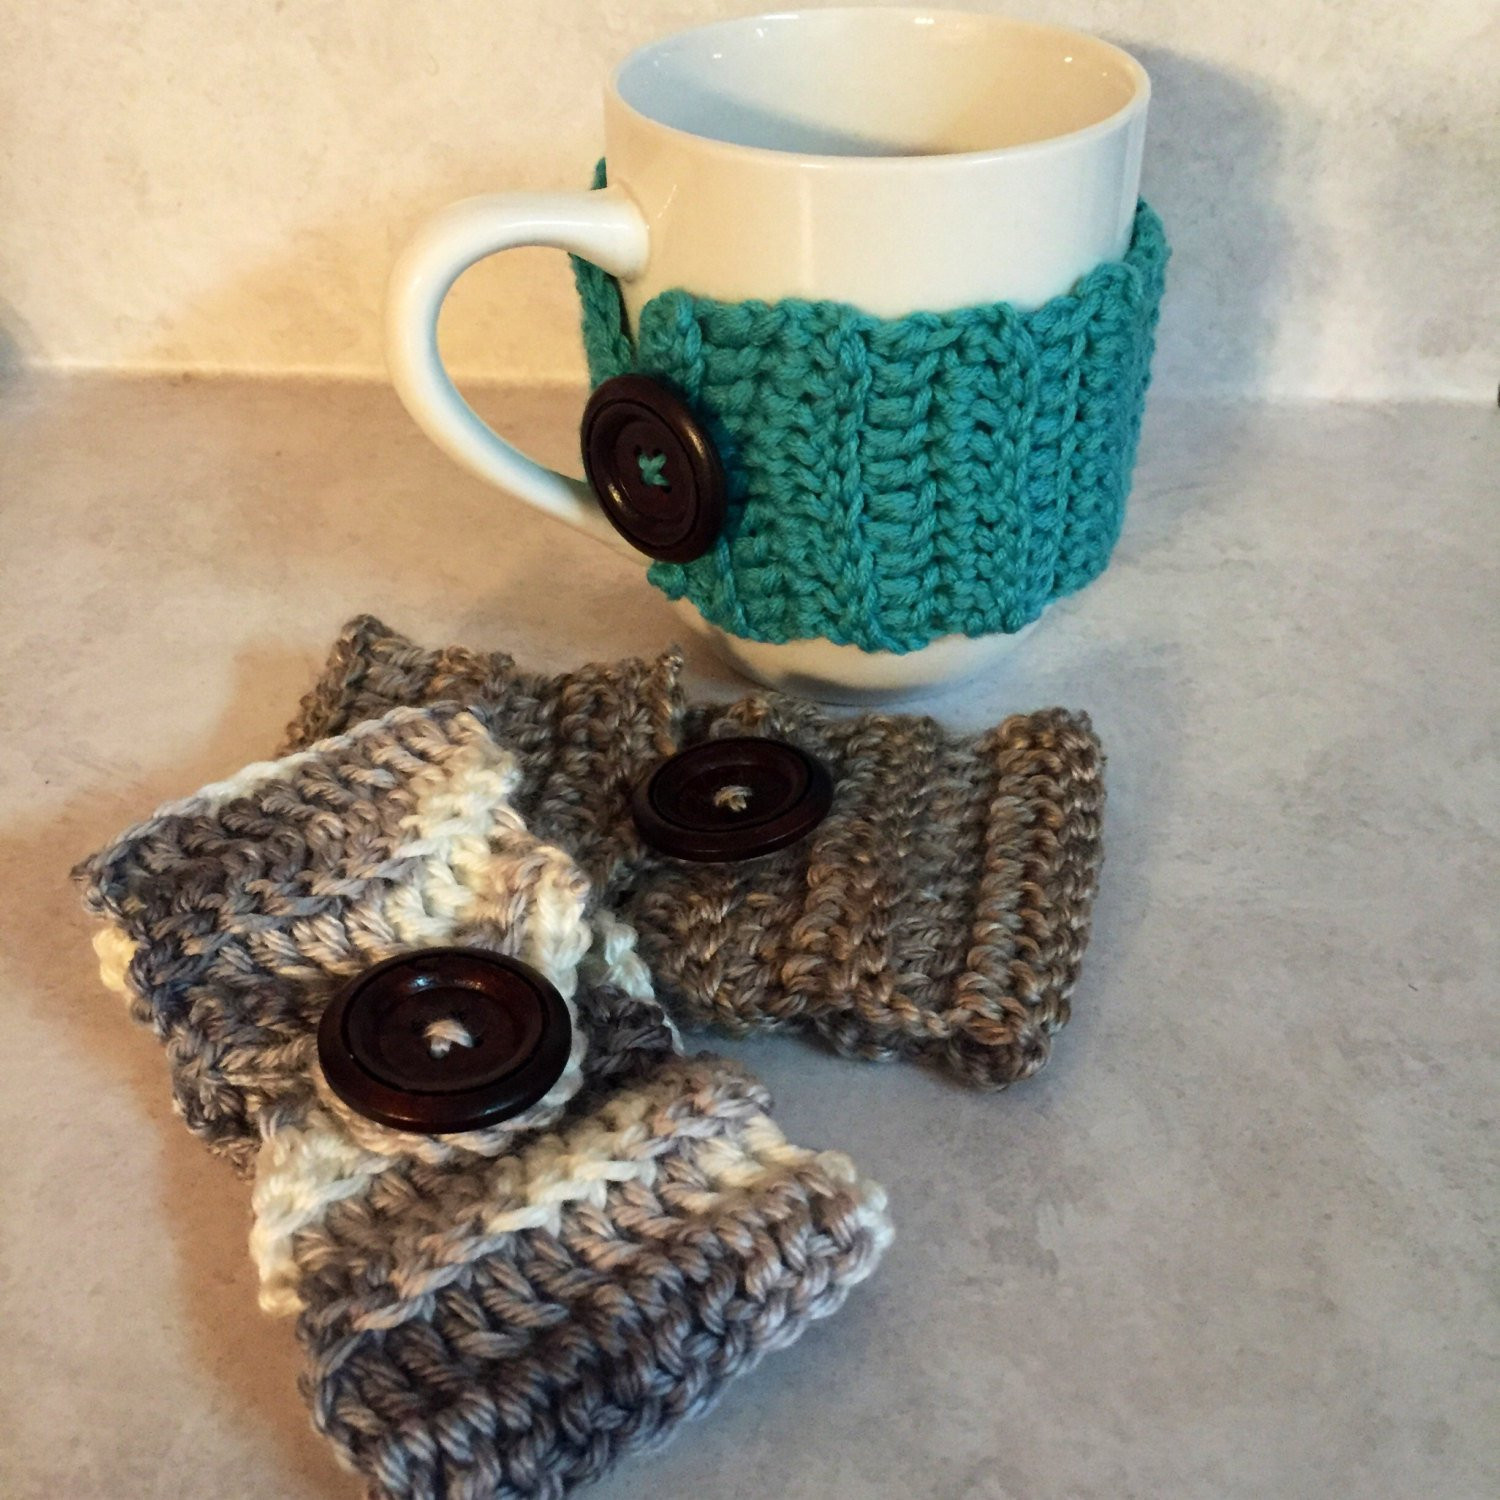 Crochet Coffee Cup Cozy New Crochet Tea Cozy Coffee Cup Sleeve Coffee Sleeve Mug Cozy Of Crochet Coffee Cup Cozy Unique Mrsbrits Ribbed Coffee Cozy Crochet Pattern